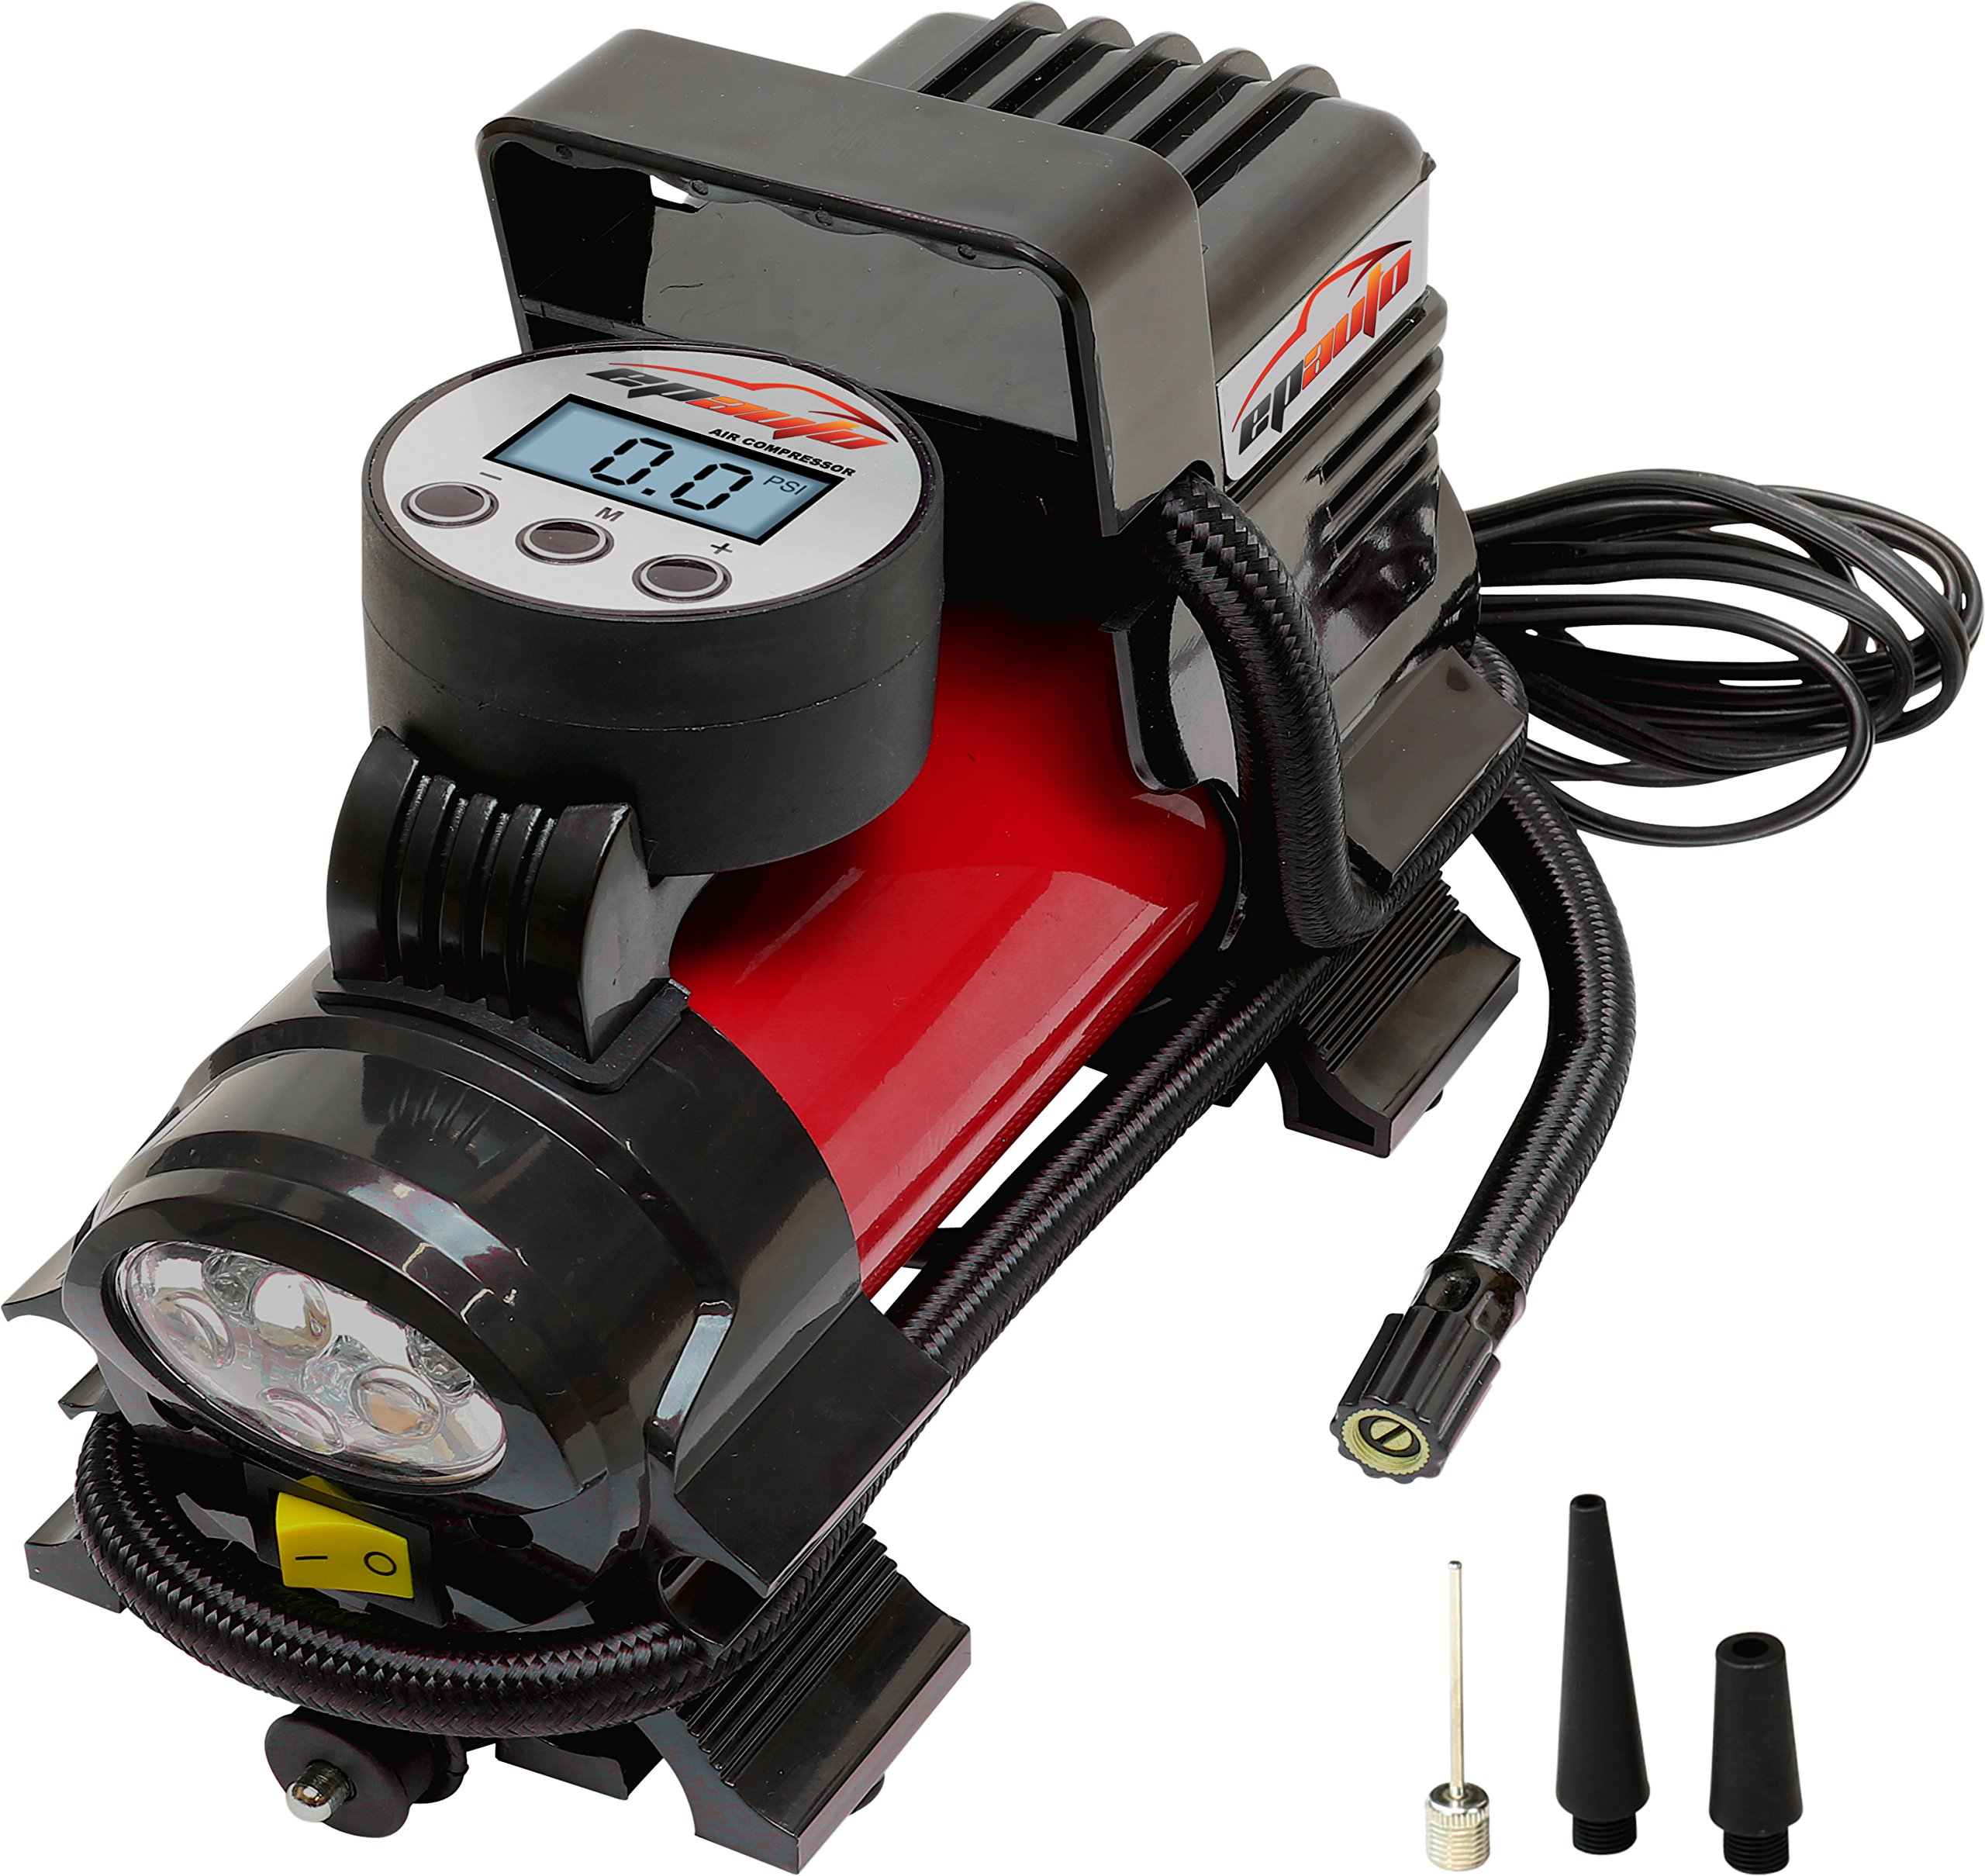 EPAuto 12V DC Portable Air Compressor Pump, Digital Tire Inflator product image